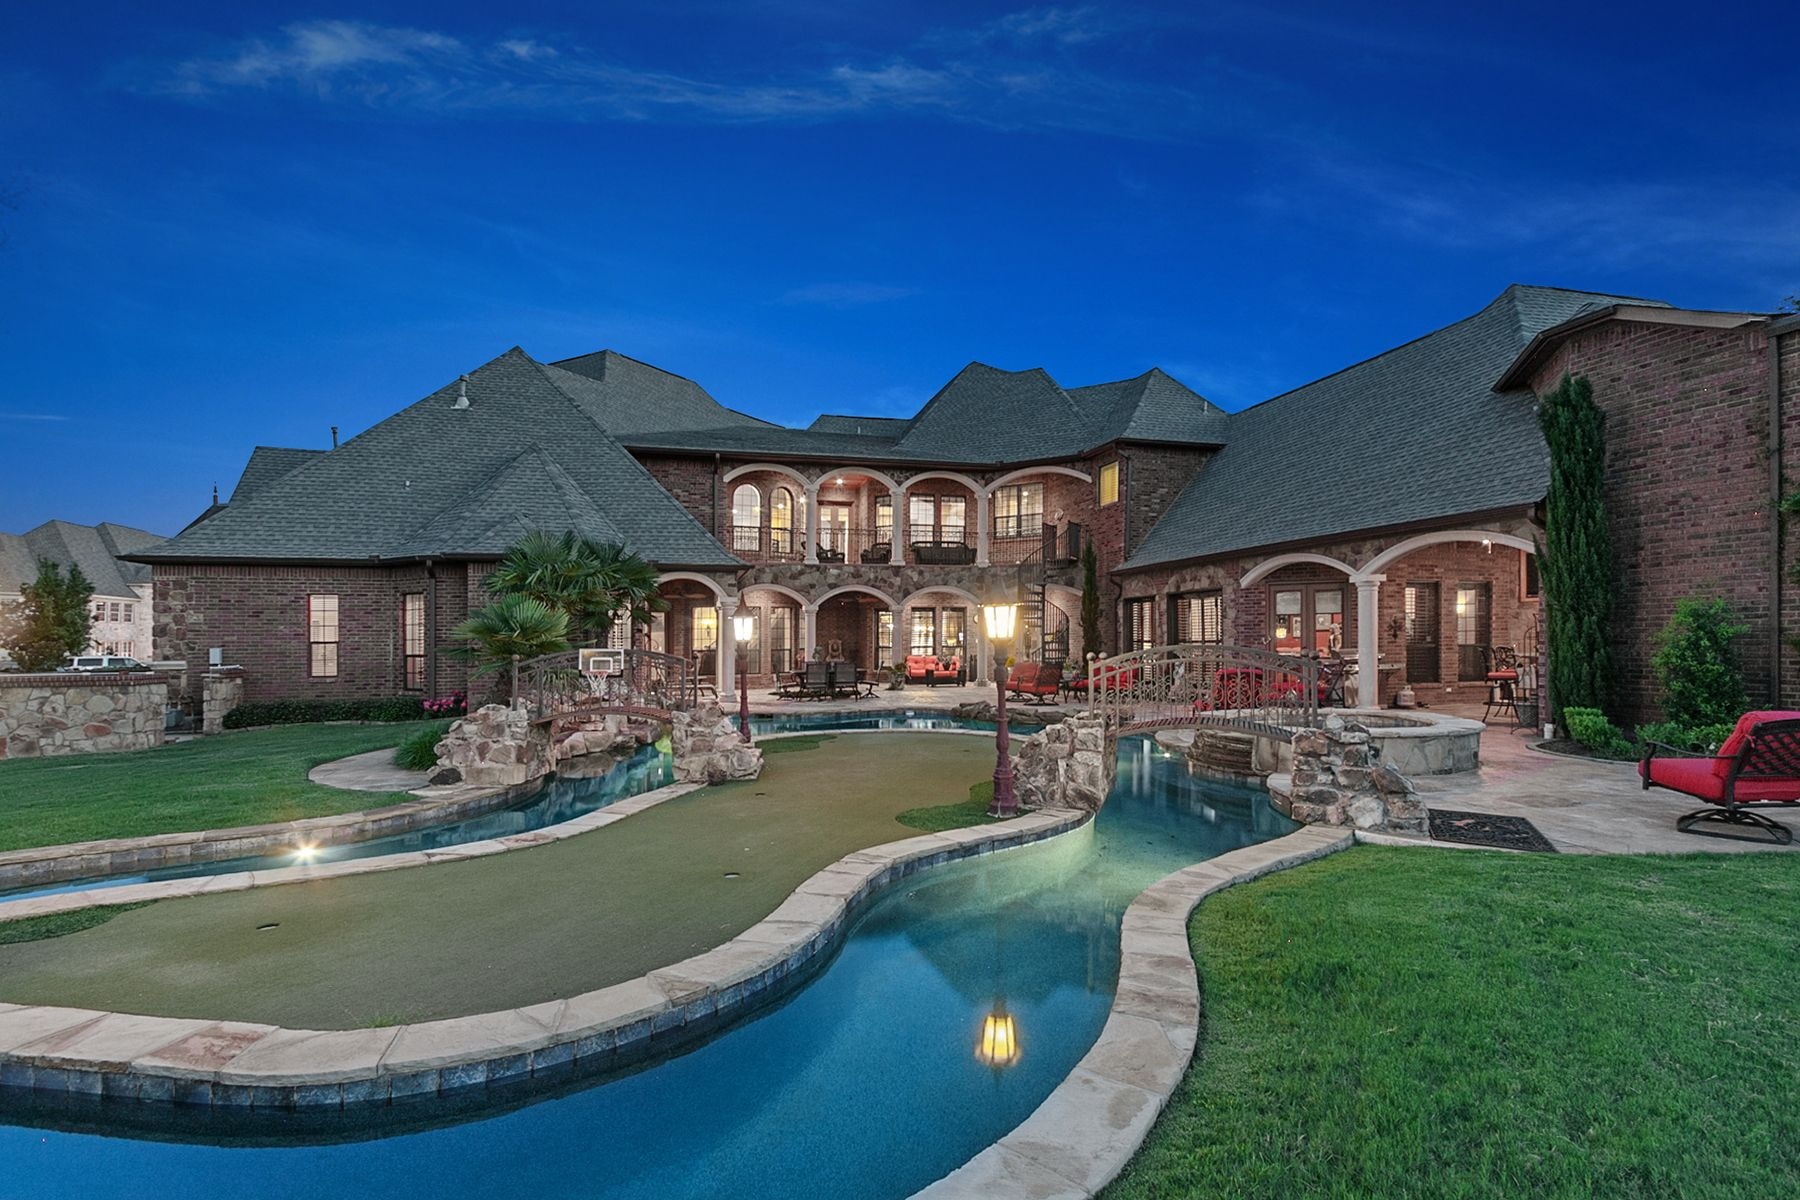 Lazy River Pool Design With Putting Green, An Island, Two  Bridges...unforgettable Backyard On This #Southlake Estate!